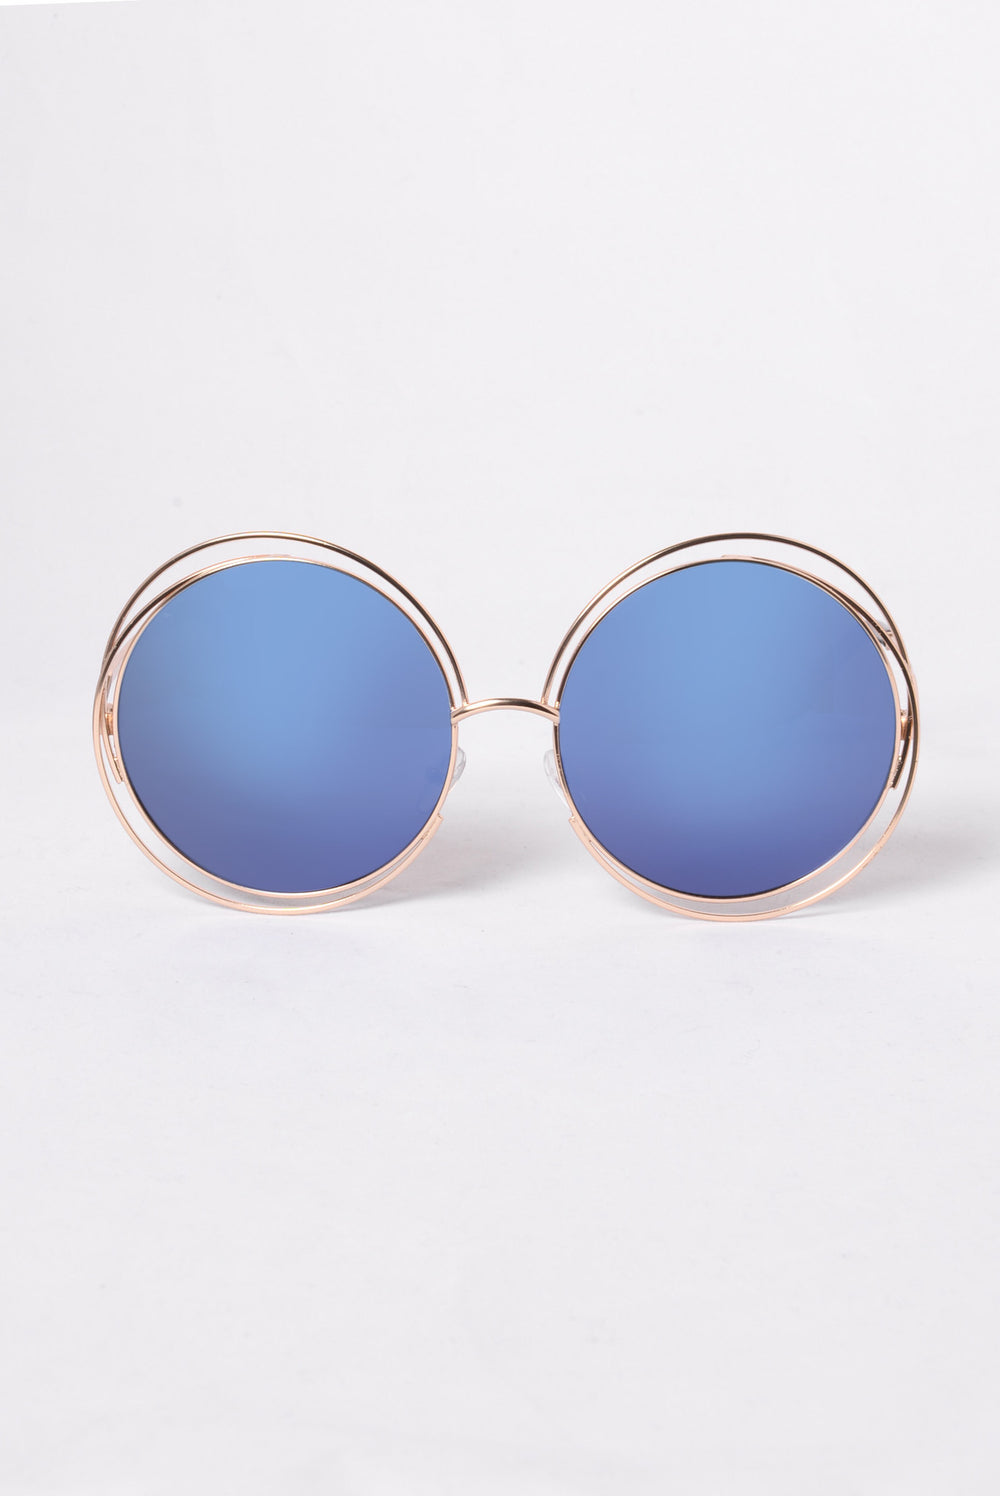 Lover's Beach Sunglasses - Gold/Blue